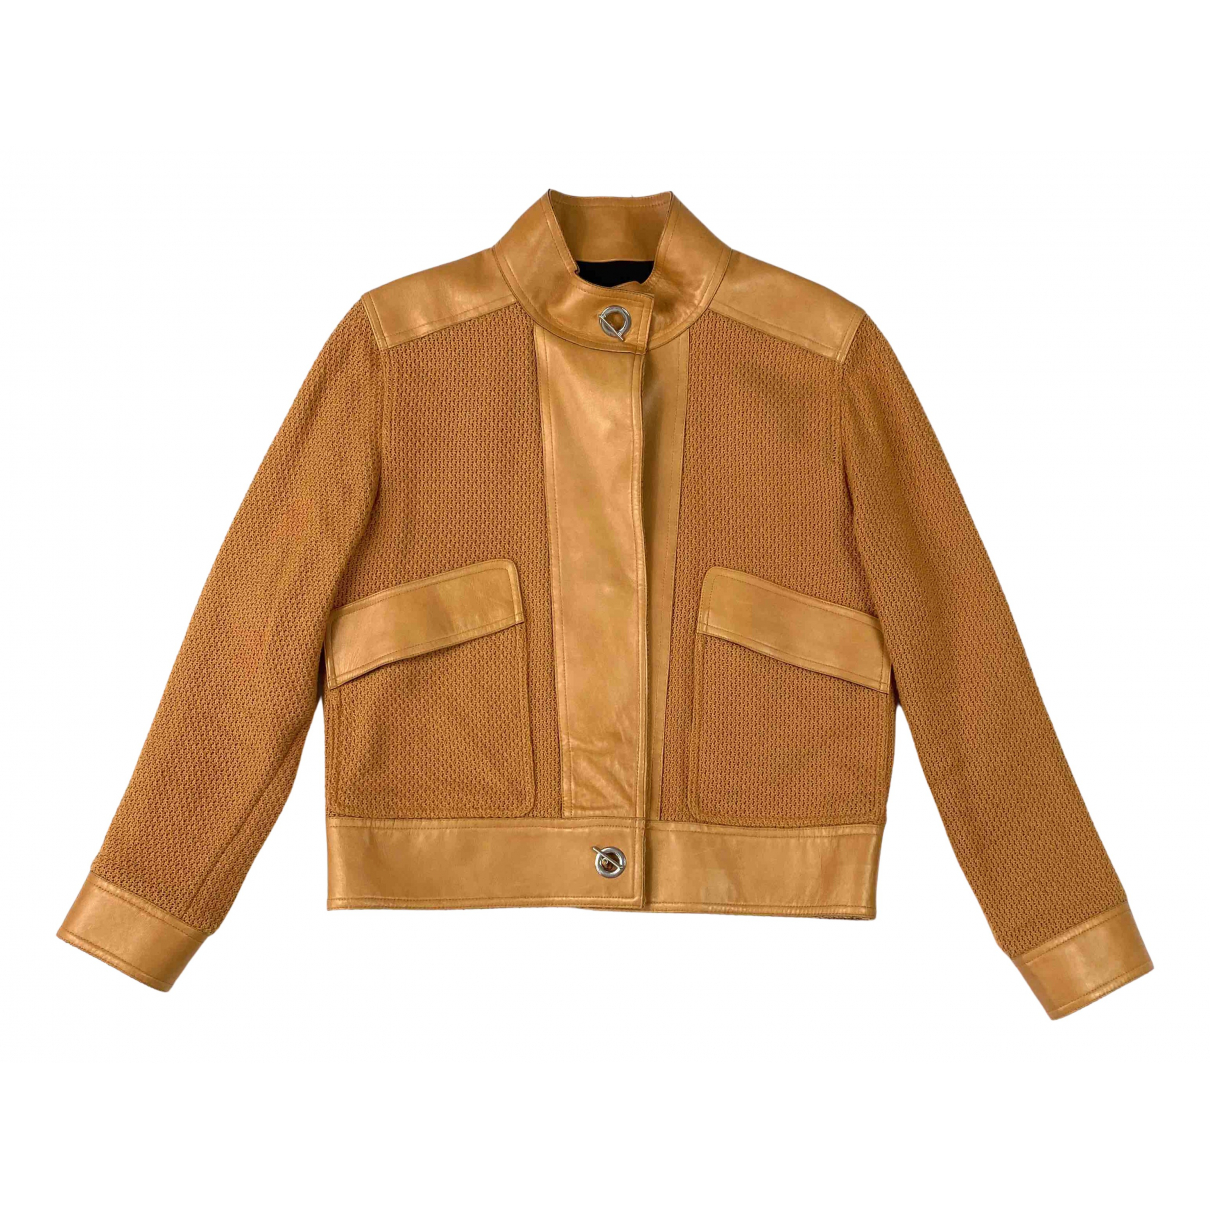 Maje Spring Summer 2019 Brown Leather jacket for Women 10 UK